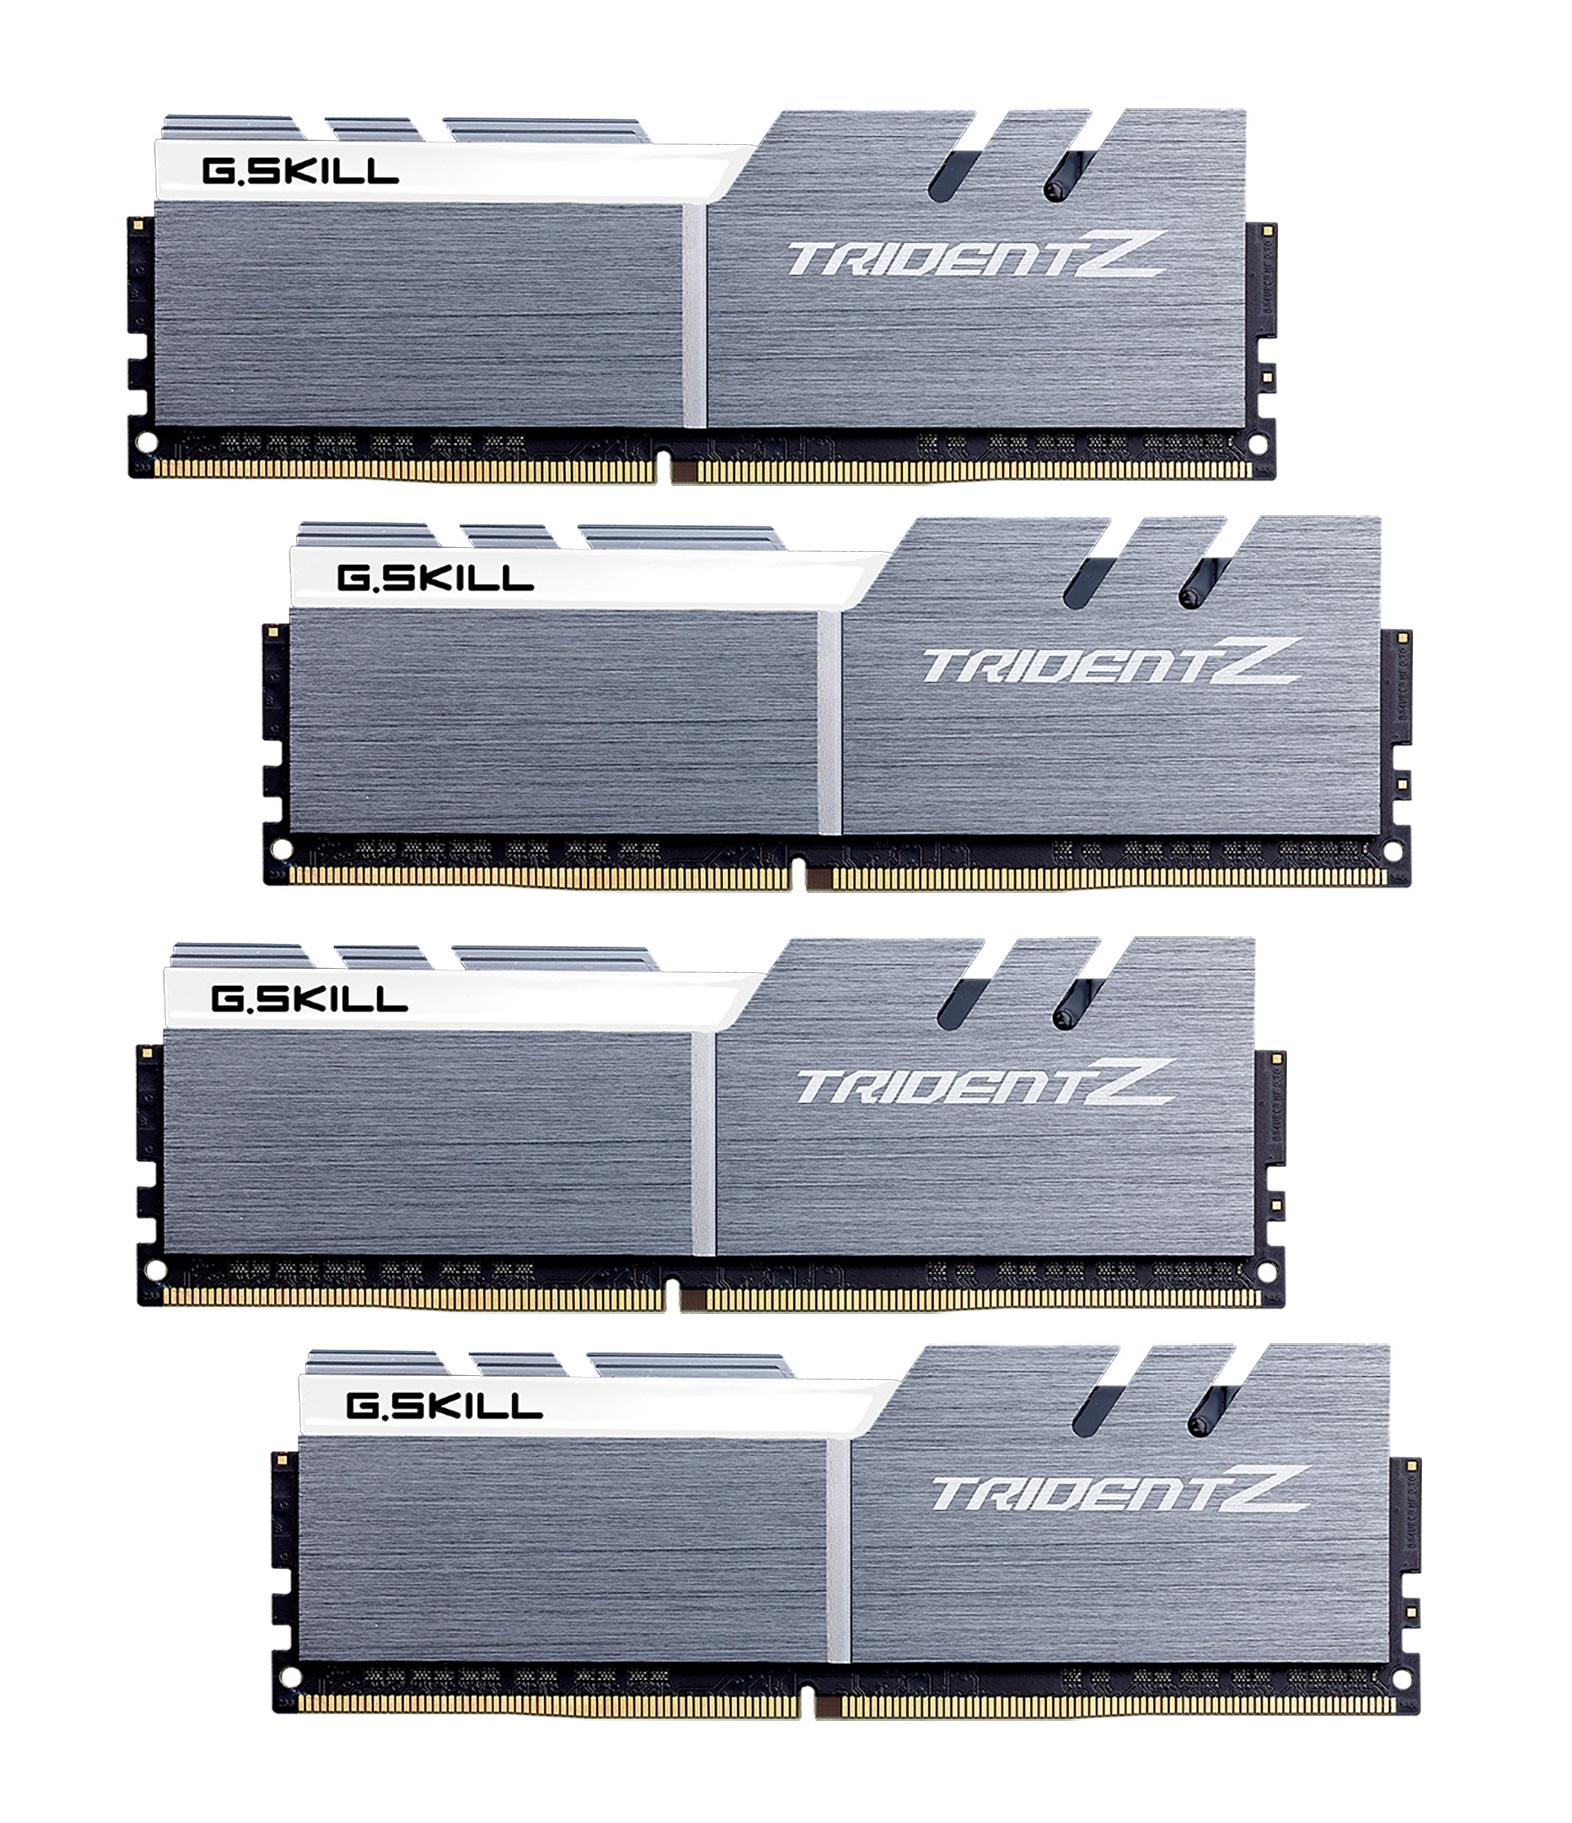 64GB G.Skill DDR4 Trident Z 3200Mhz PC4-25600 CL14 White/Gray 1.35V Quad Channel Kit (4x16GB)